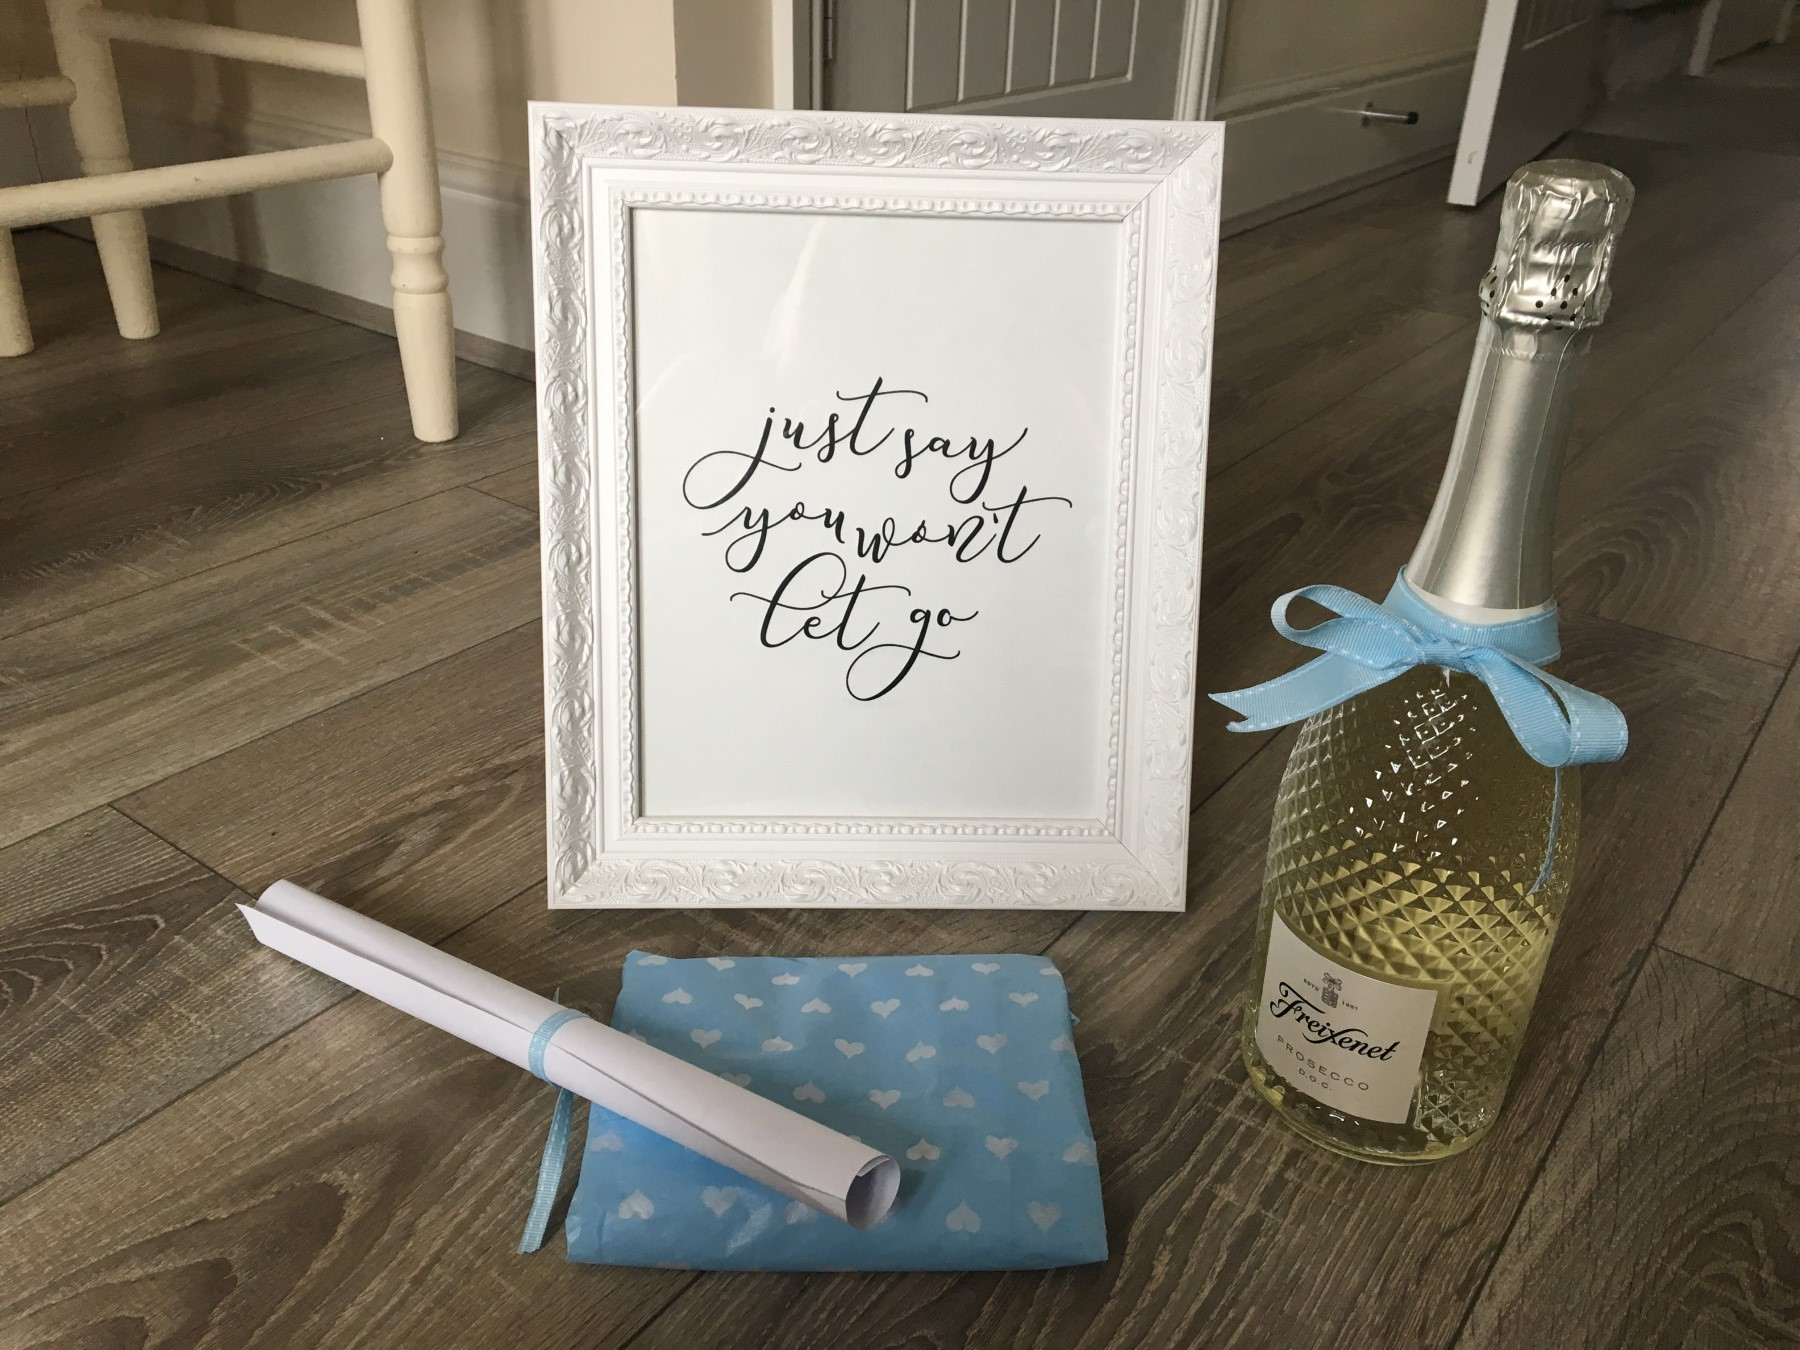 Bride to be gift hamper contents